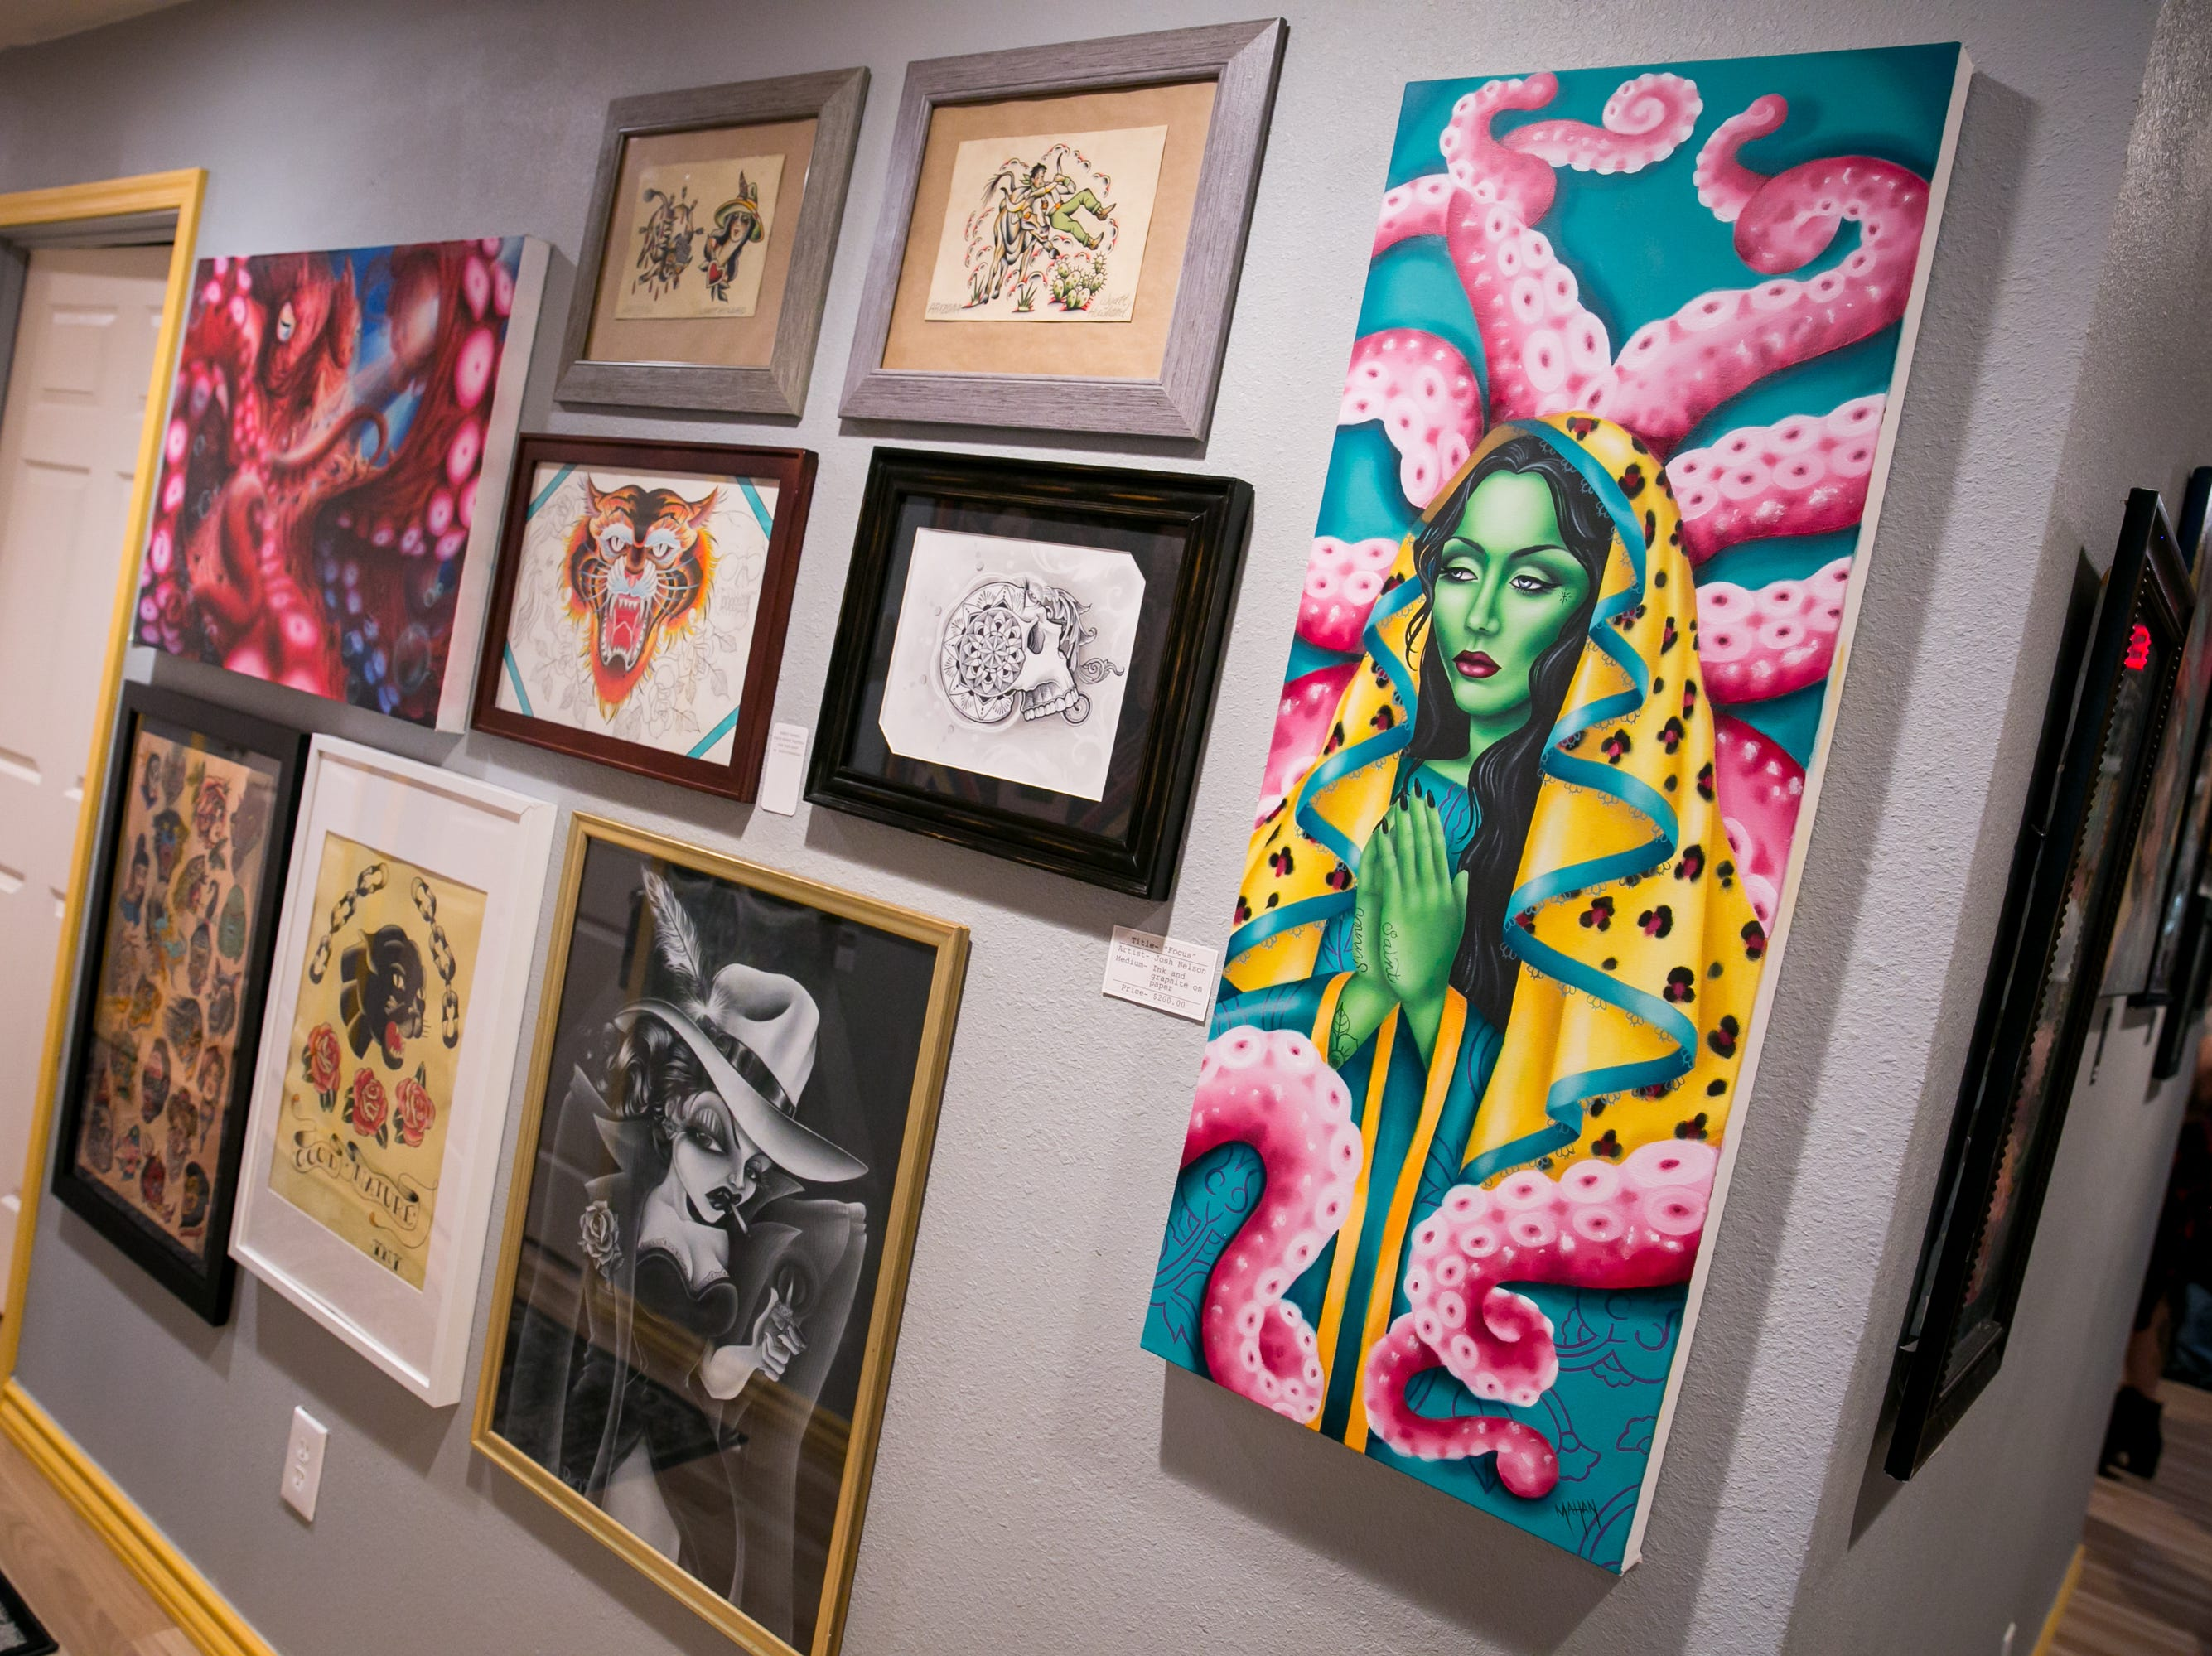 Tons of great work was featured at The Heart of Town tattoo art show at Lighten Up Laser during First Friday on October 5, 2018.